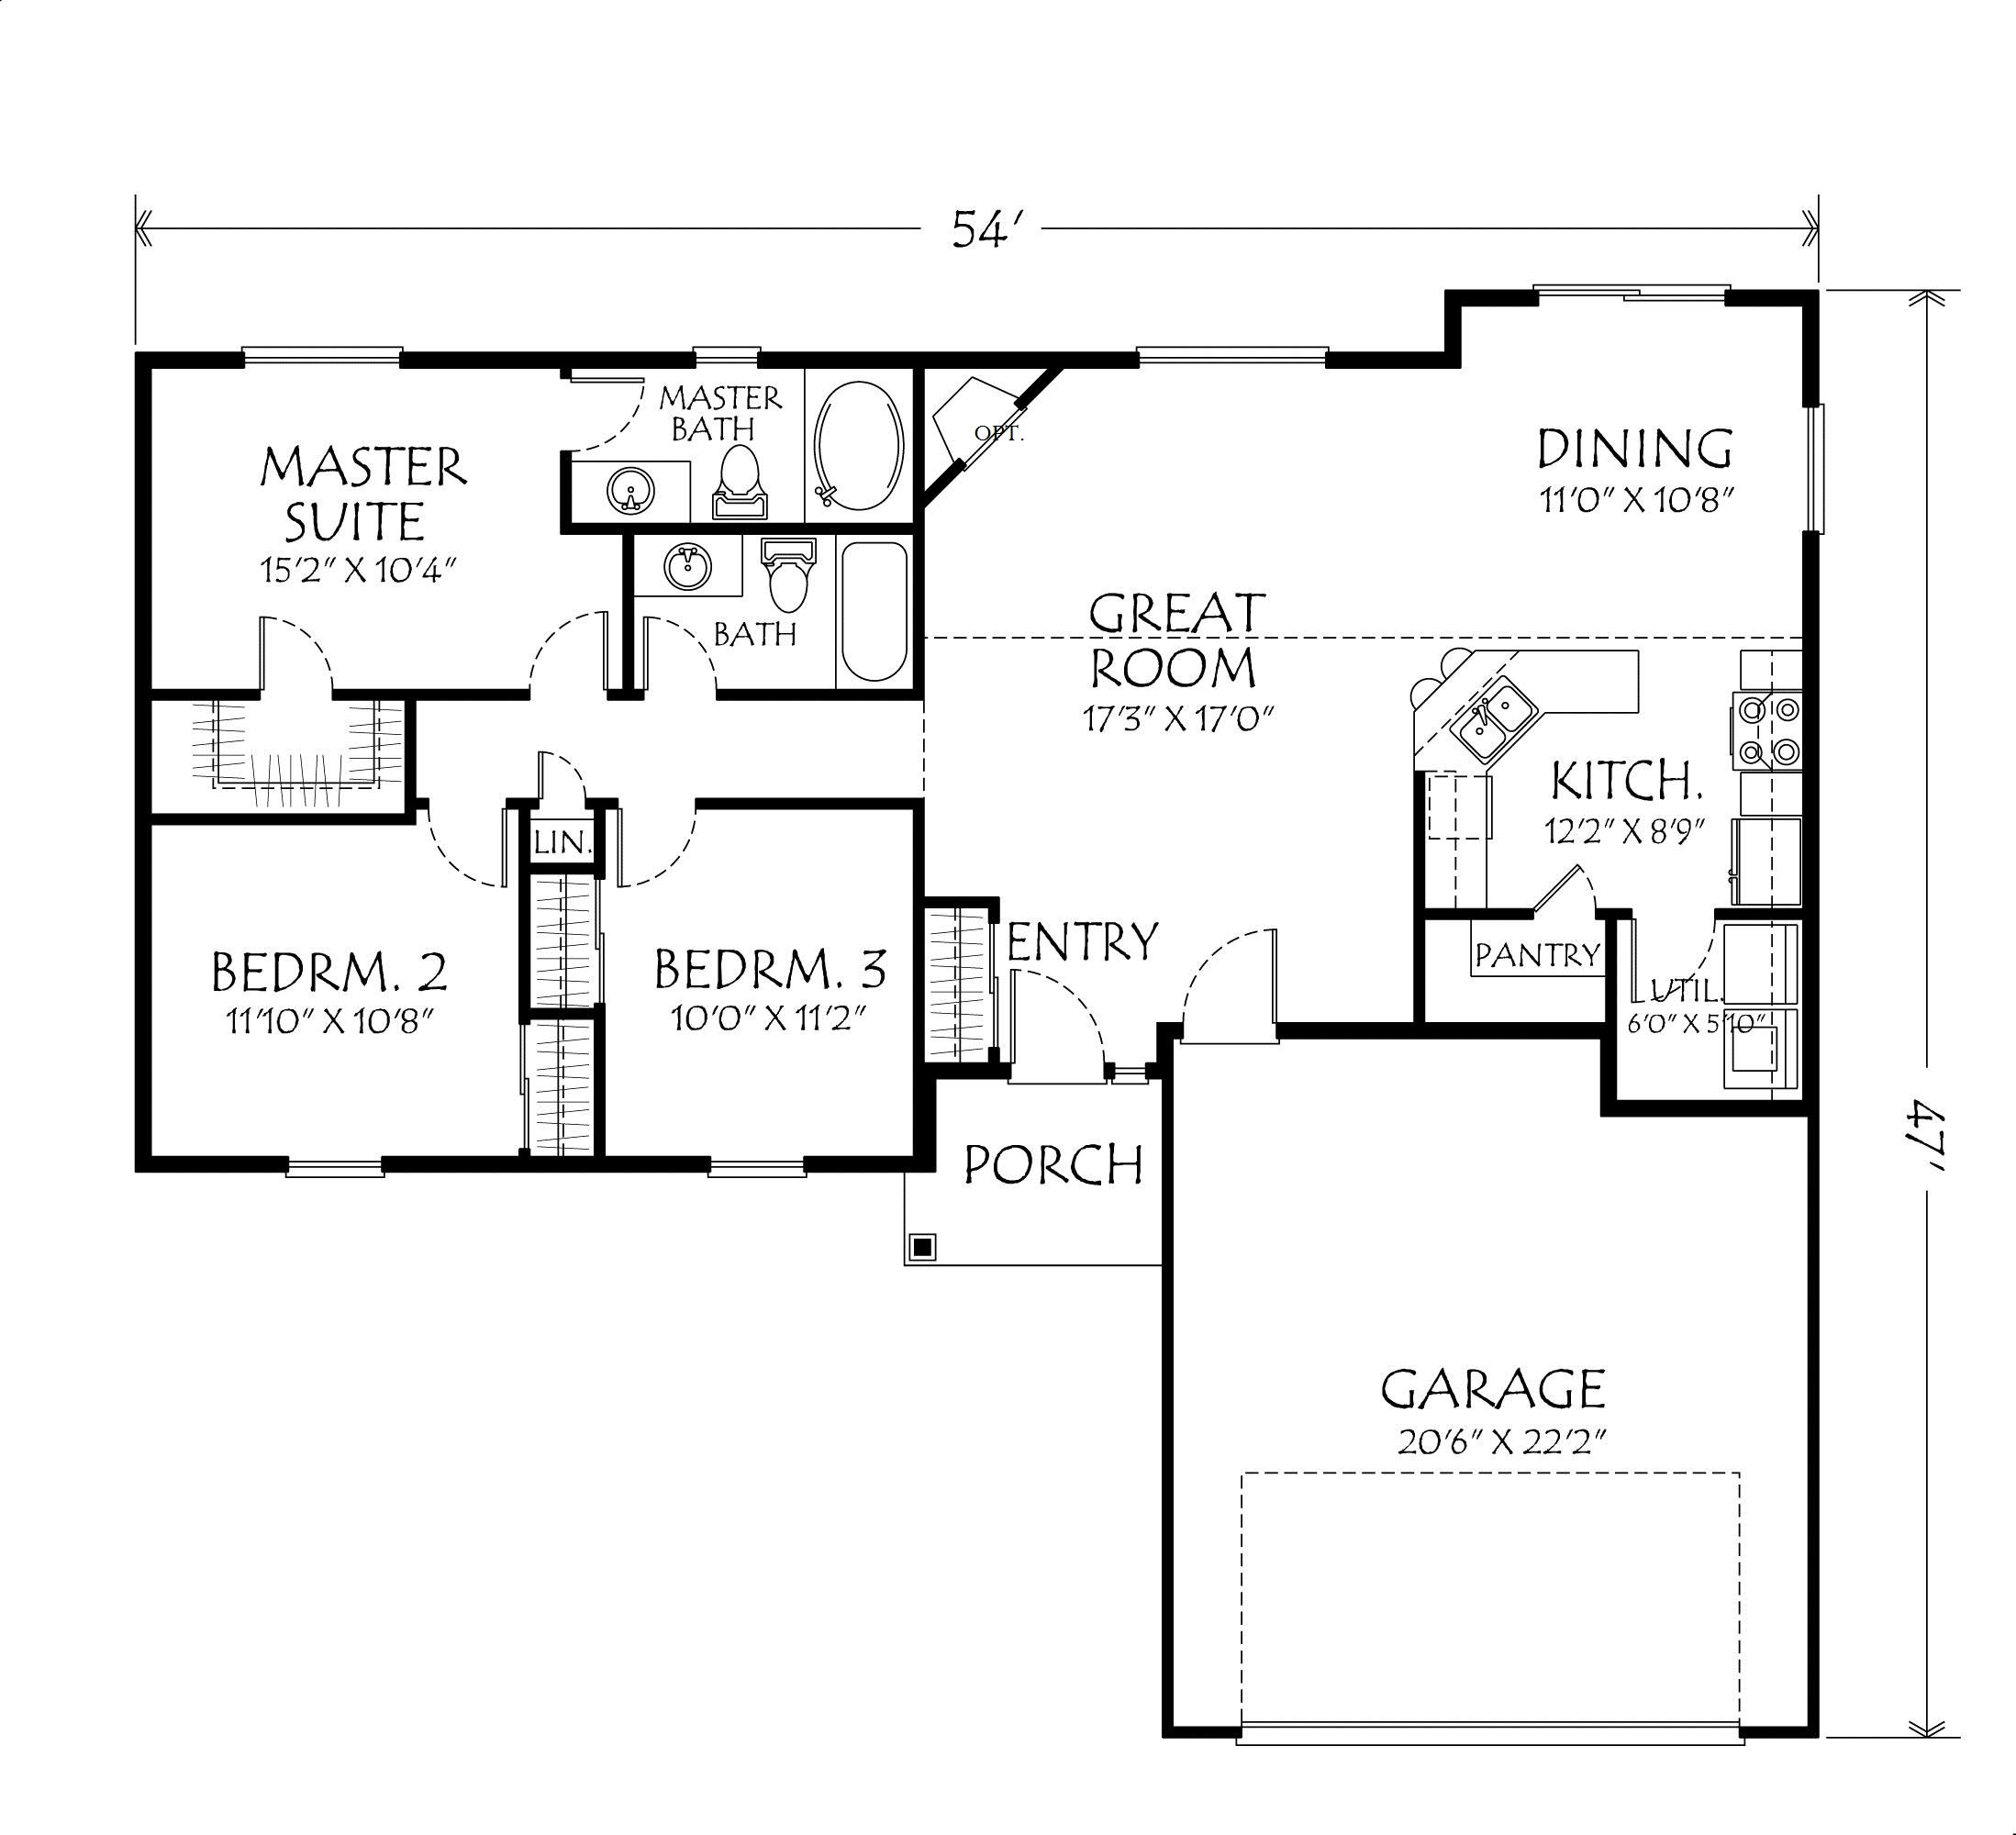 singlestoryopenfloorplans single story plan 3 bedrooms 2 - Single Story House Plans